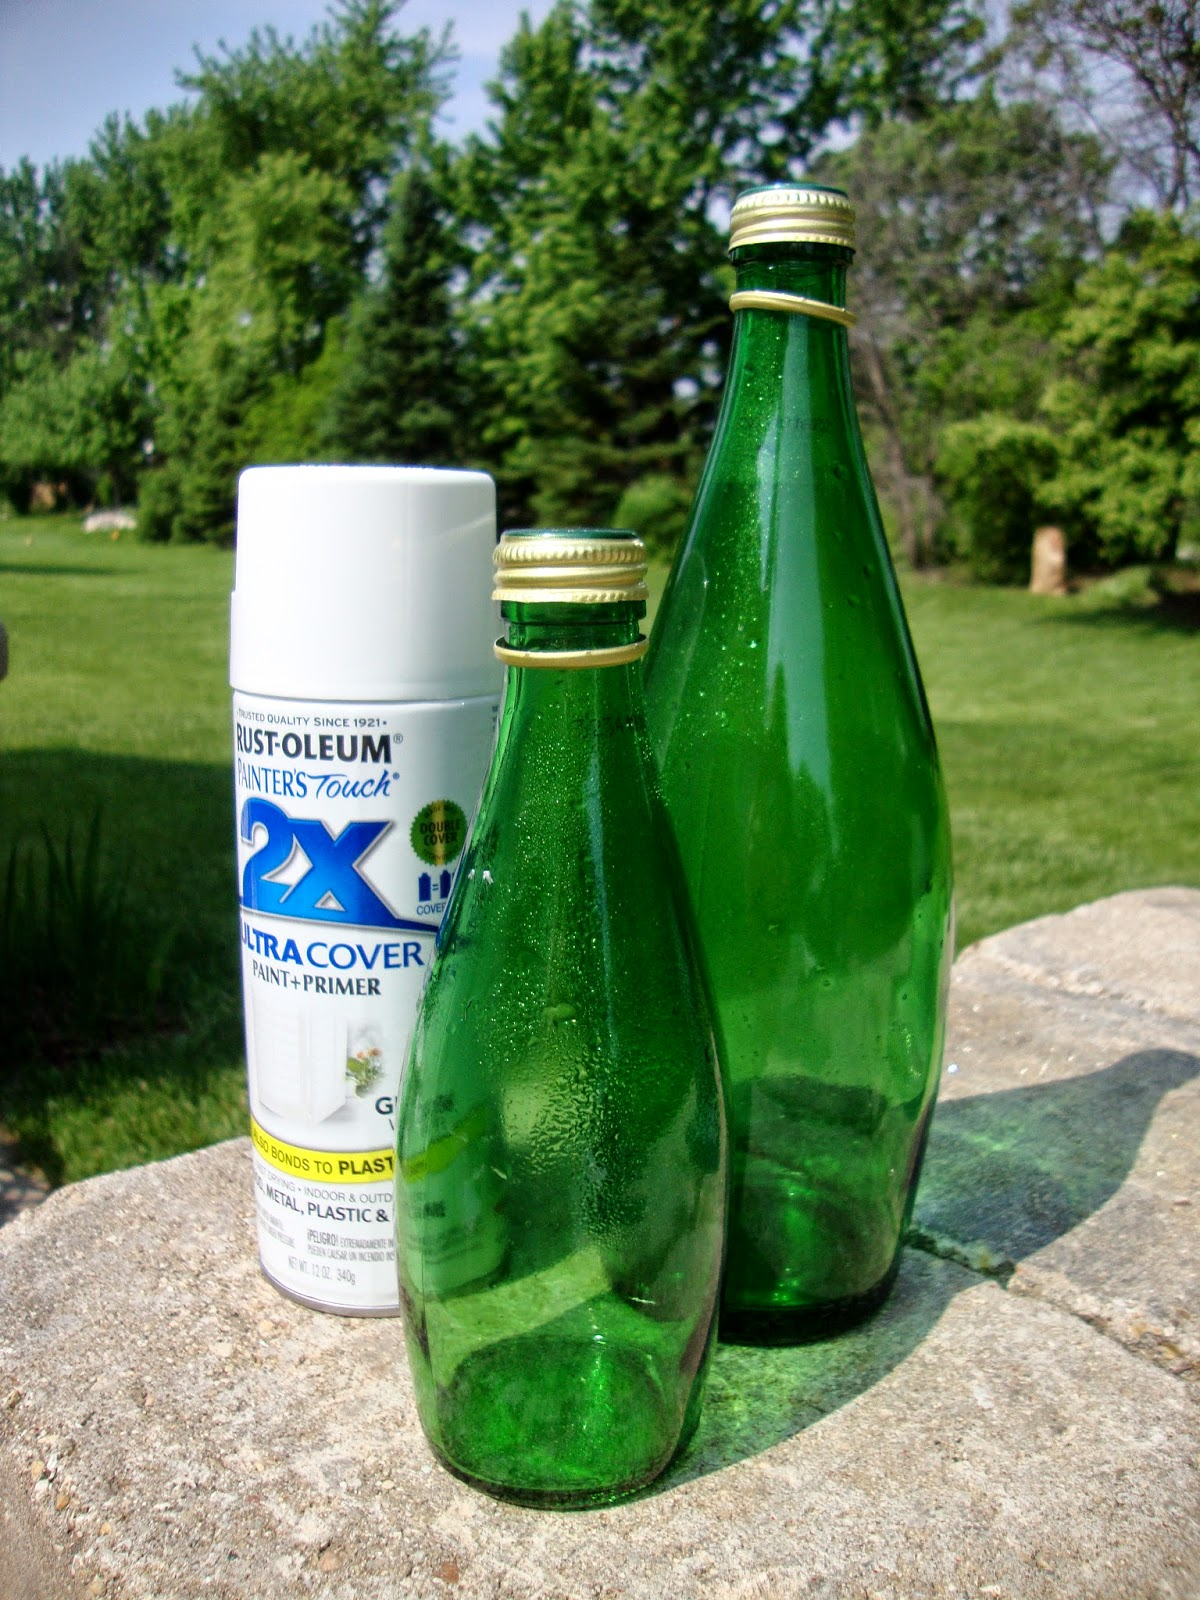 Recycled glass bottles fashionlingual - How to recycle glass bottles ...